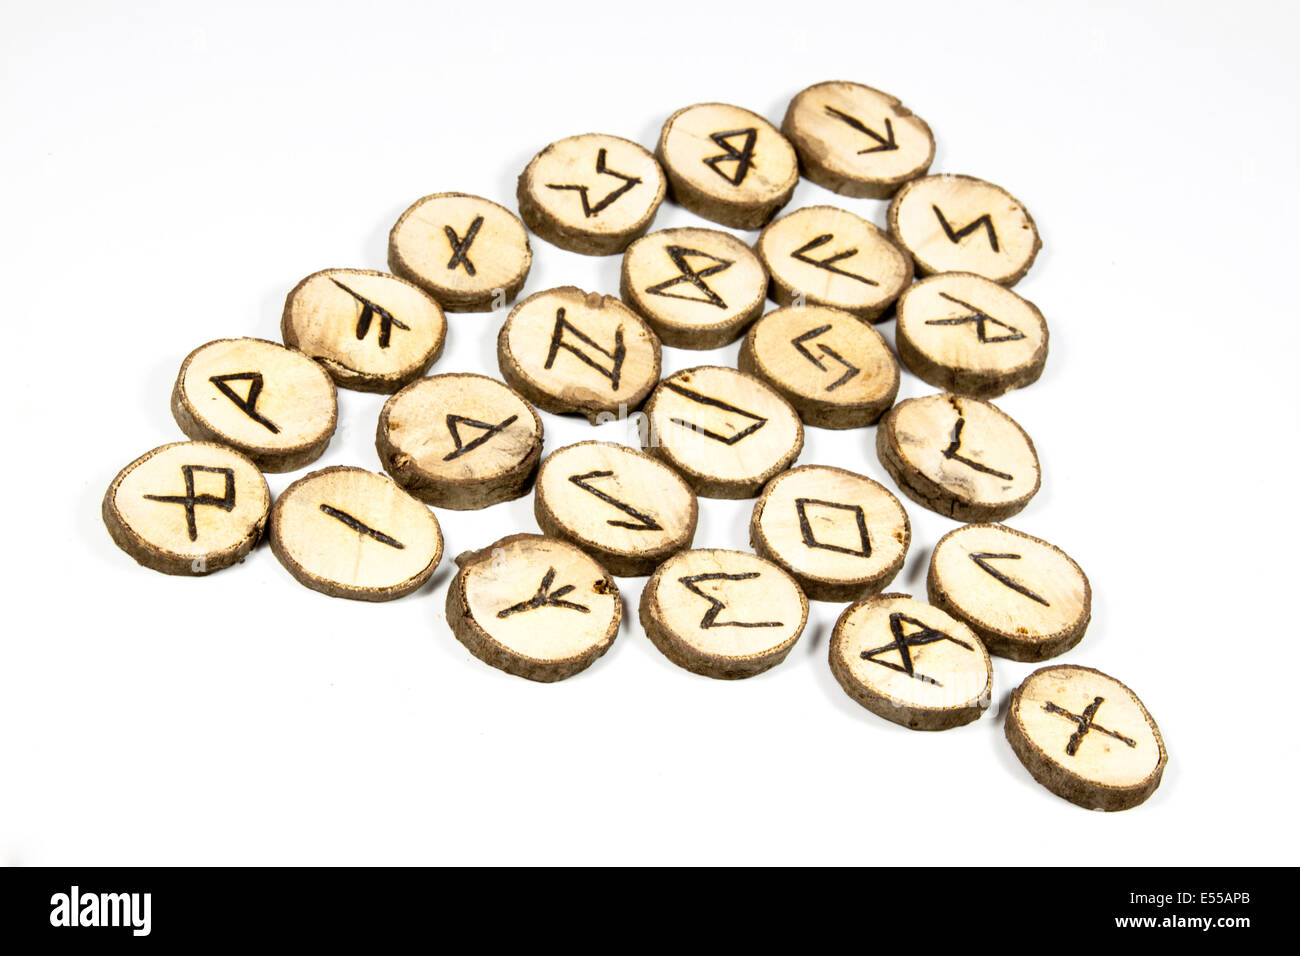 Nordic symbols on collection of handmade wooden runes - Stock Image